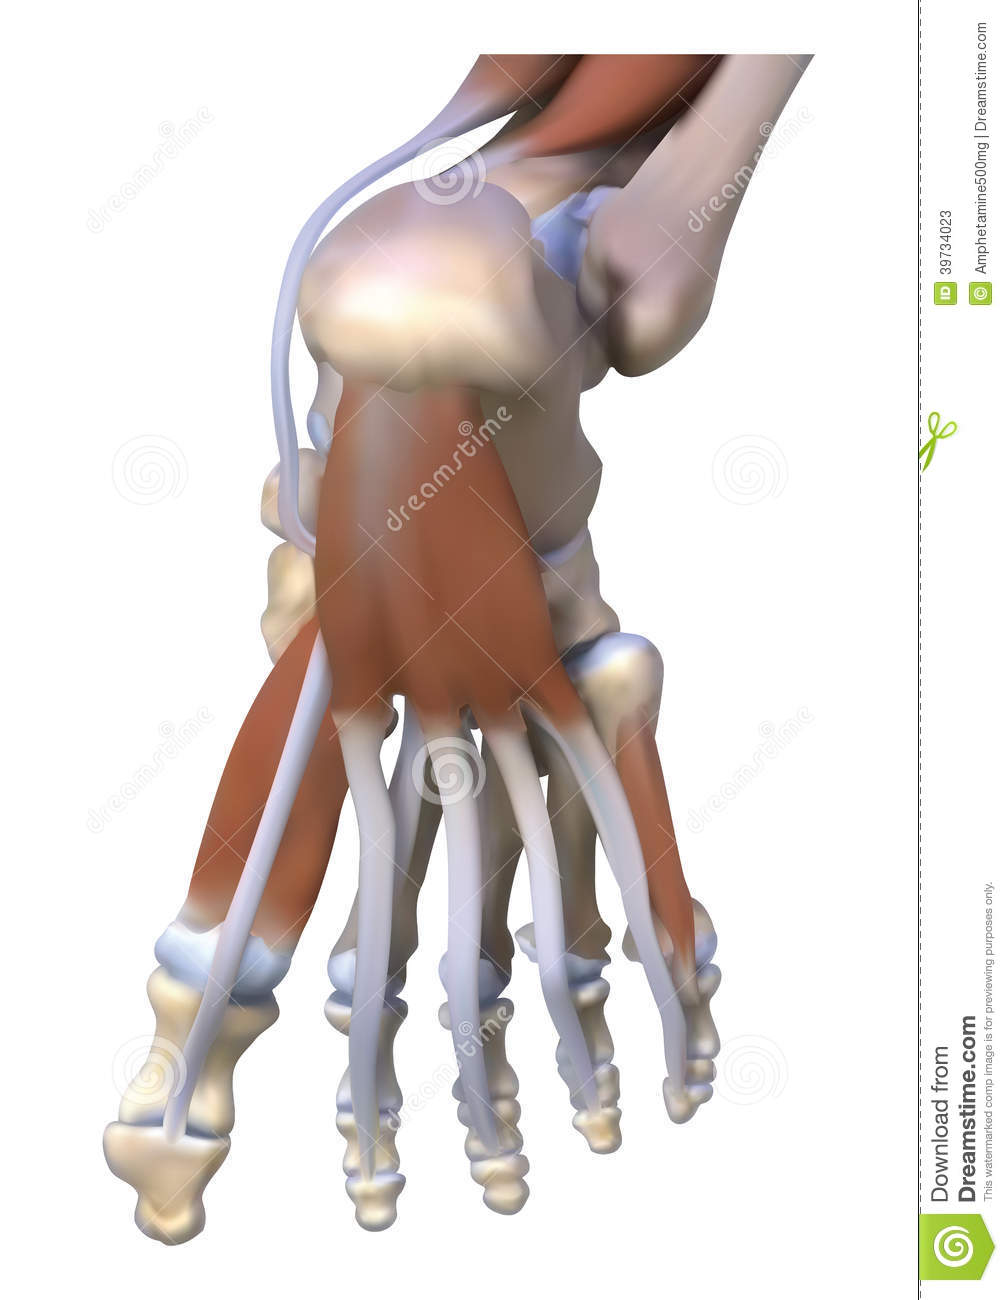 Muscle Ligaments Under The Feet Stock Illustration - Illustration of ...